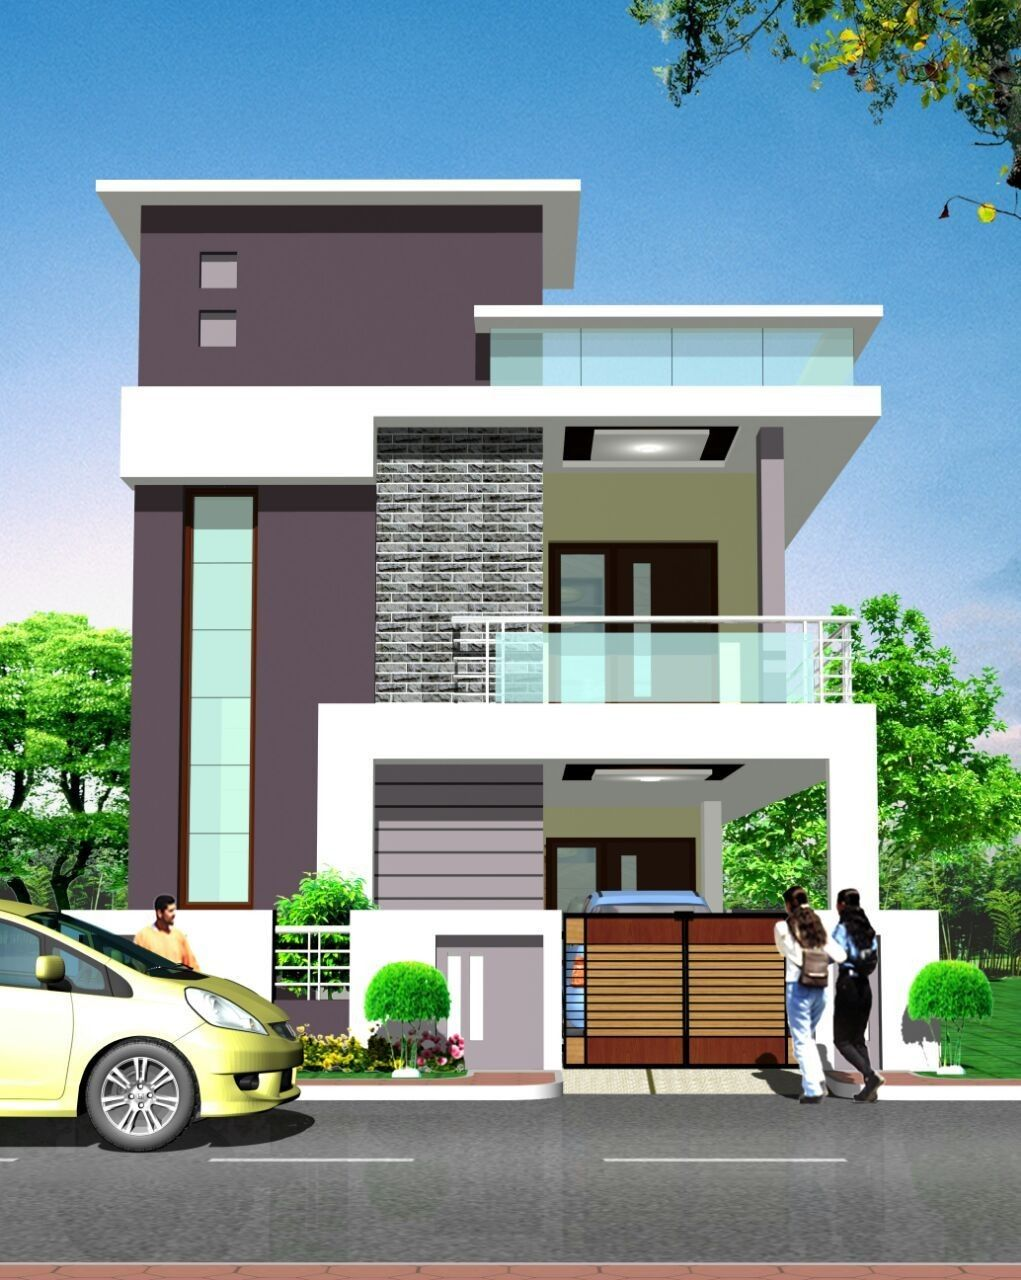 Cool design in house front elevation designs also rh pinterest